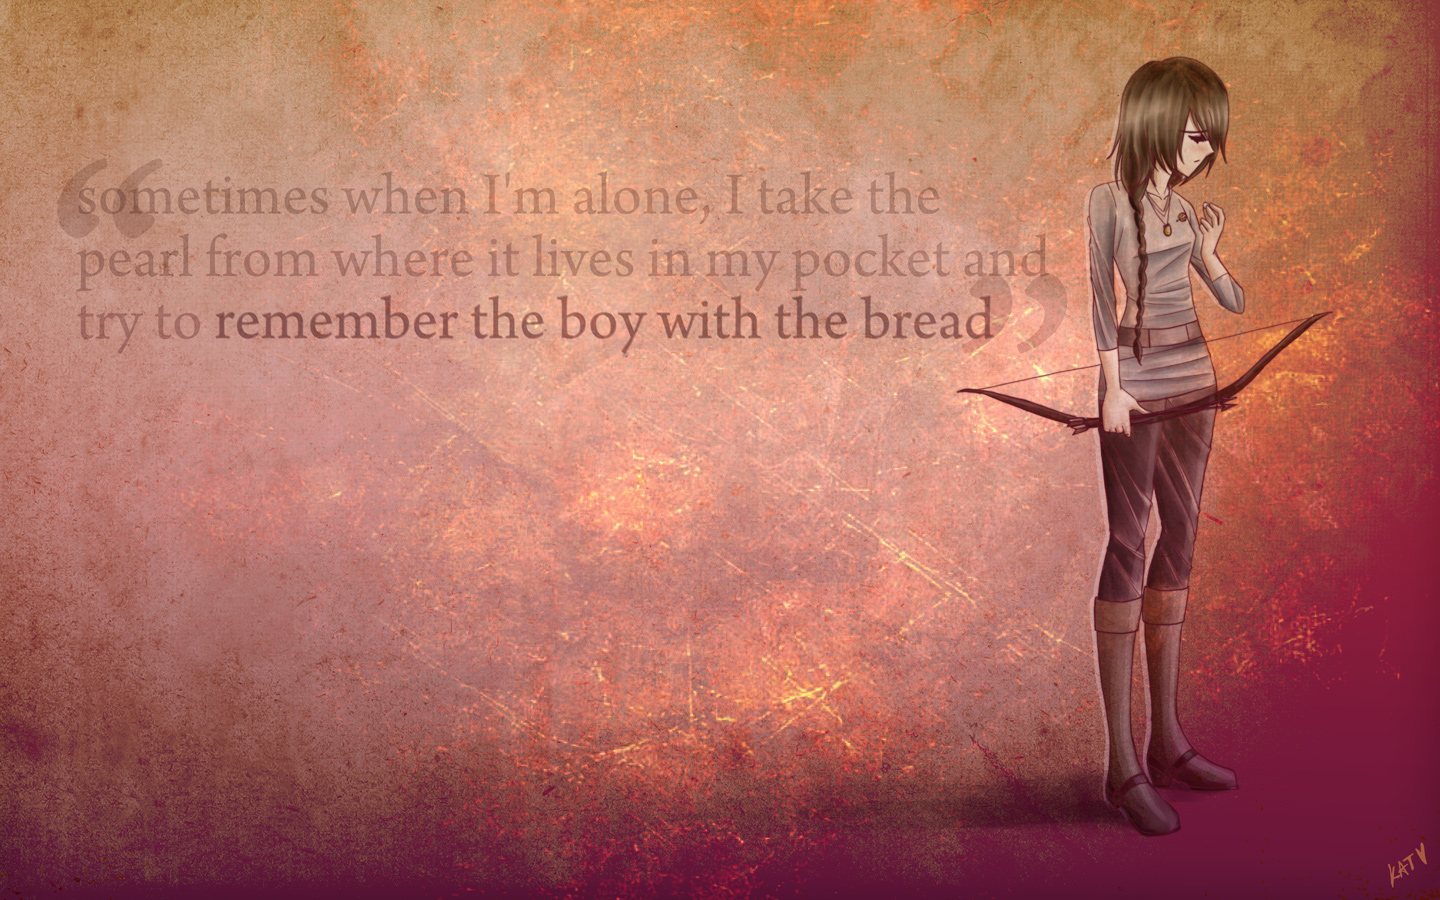 Hunger Games Mockingjay wallpaper 01 by fortykoubuns 1440x900